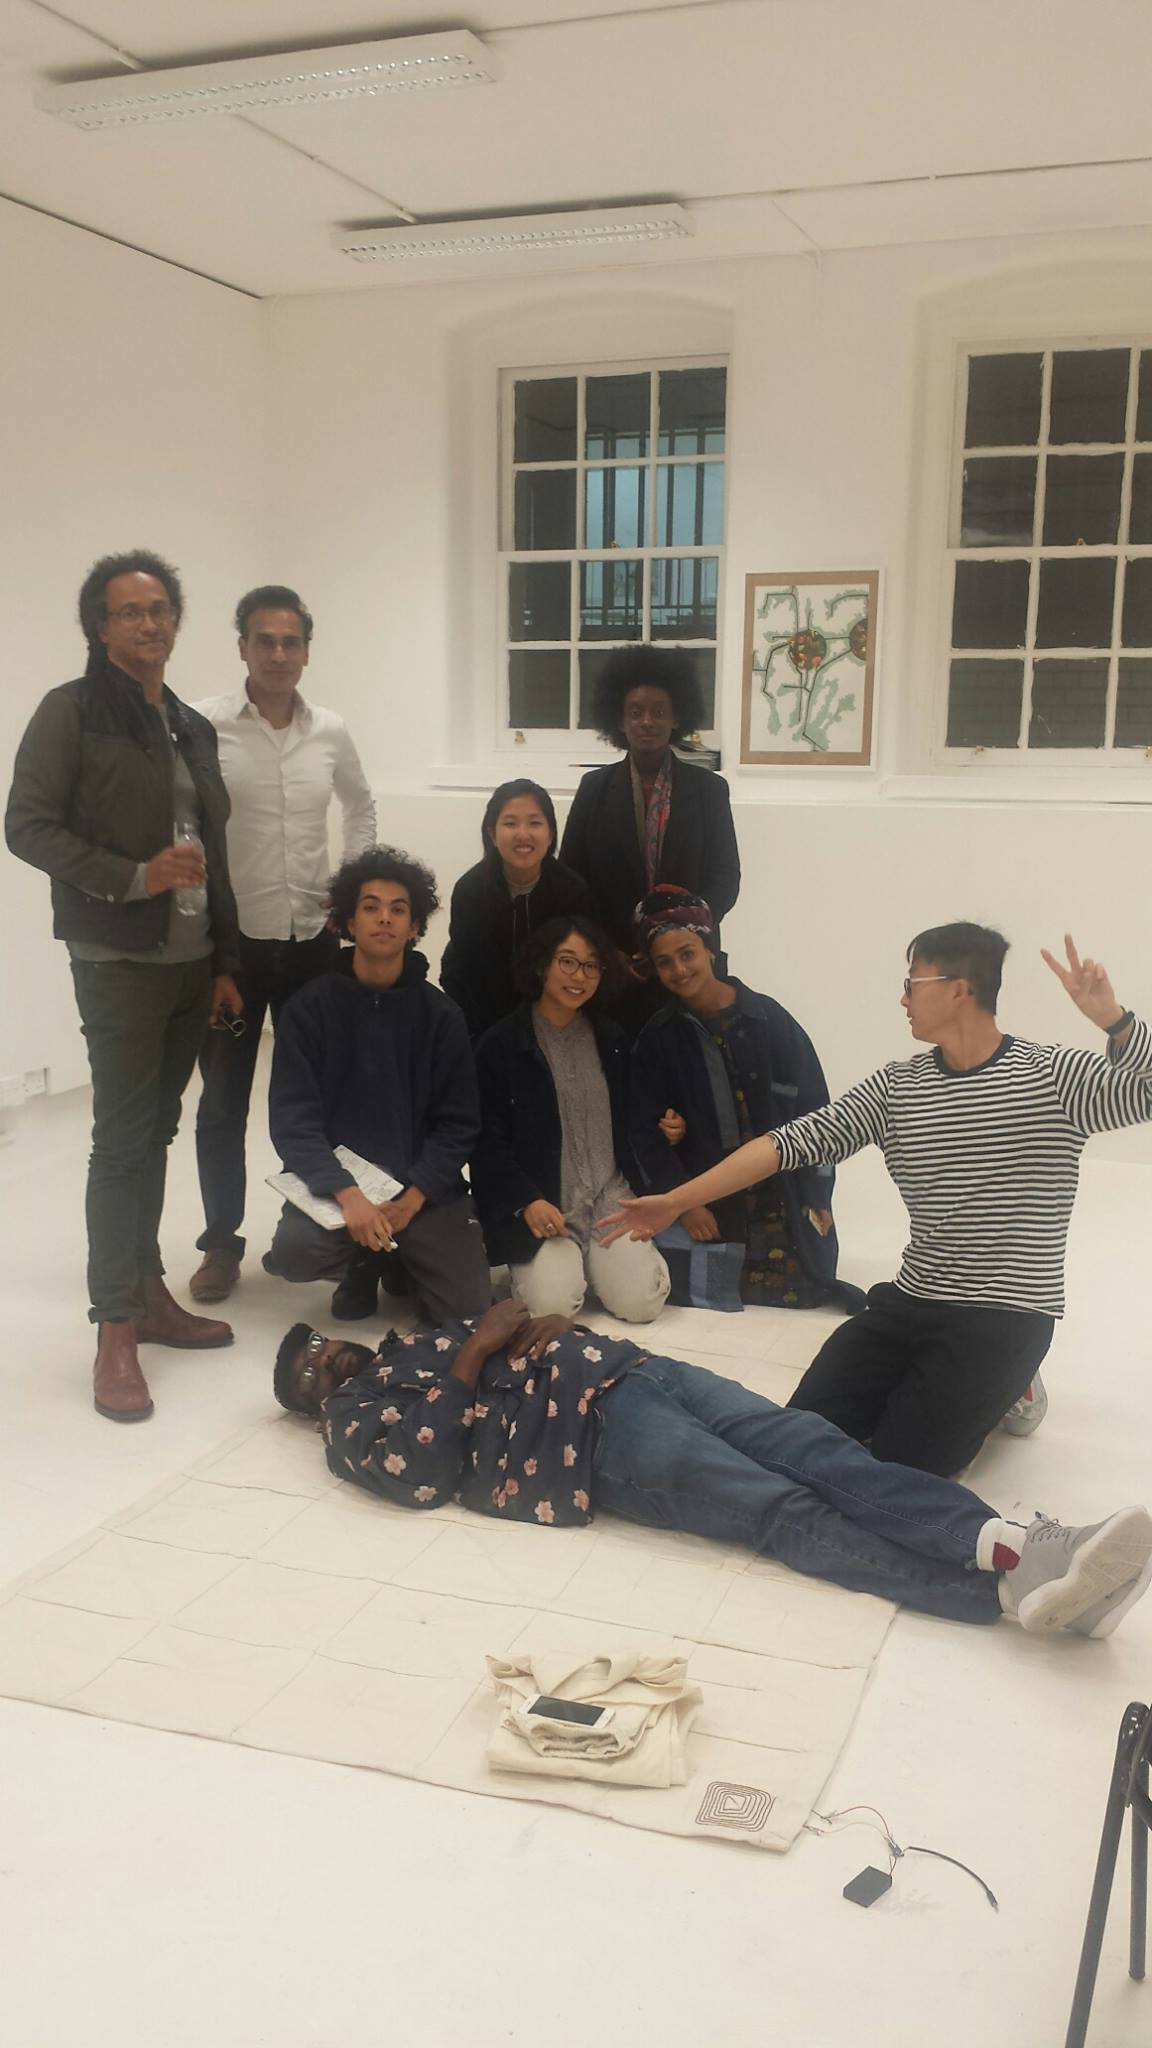 The group relaxing at the crit of the Beginnings of Truth exhibition with Dr Kimathi Donkor (far left).